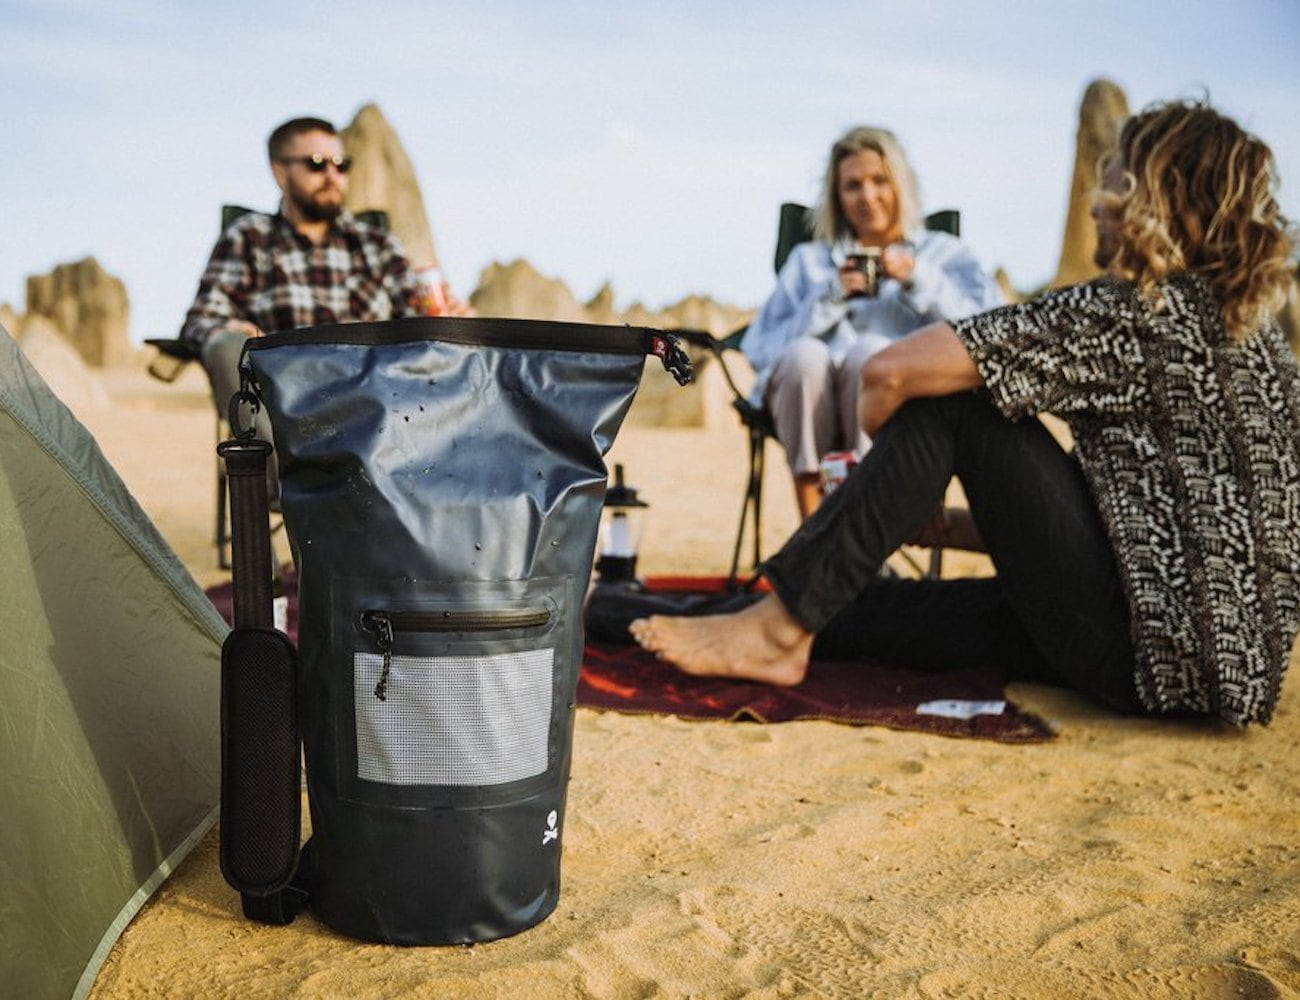 Ghost Outdoors Undercover Cool Bag also doubles as a floatation device